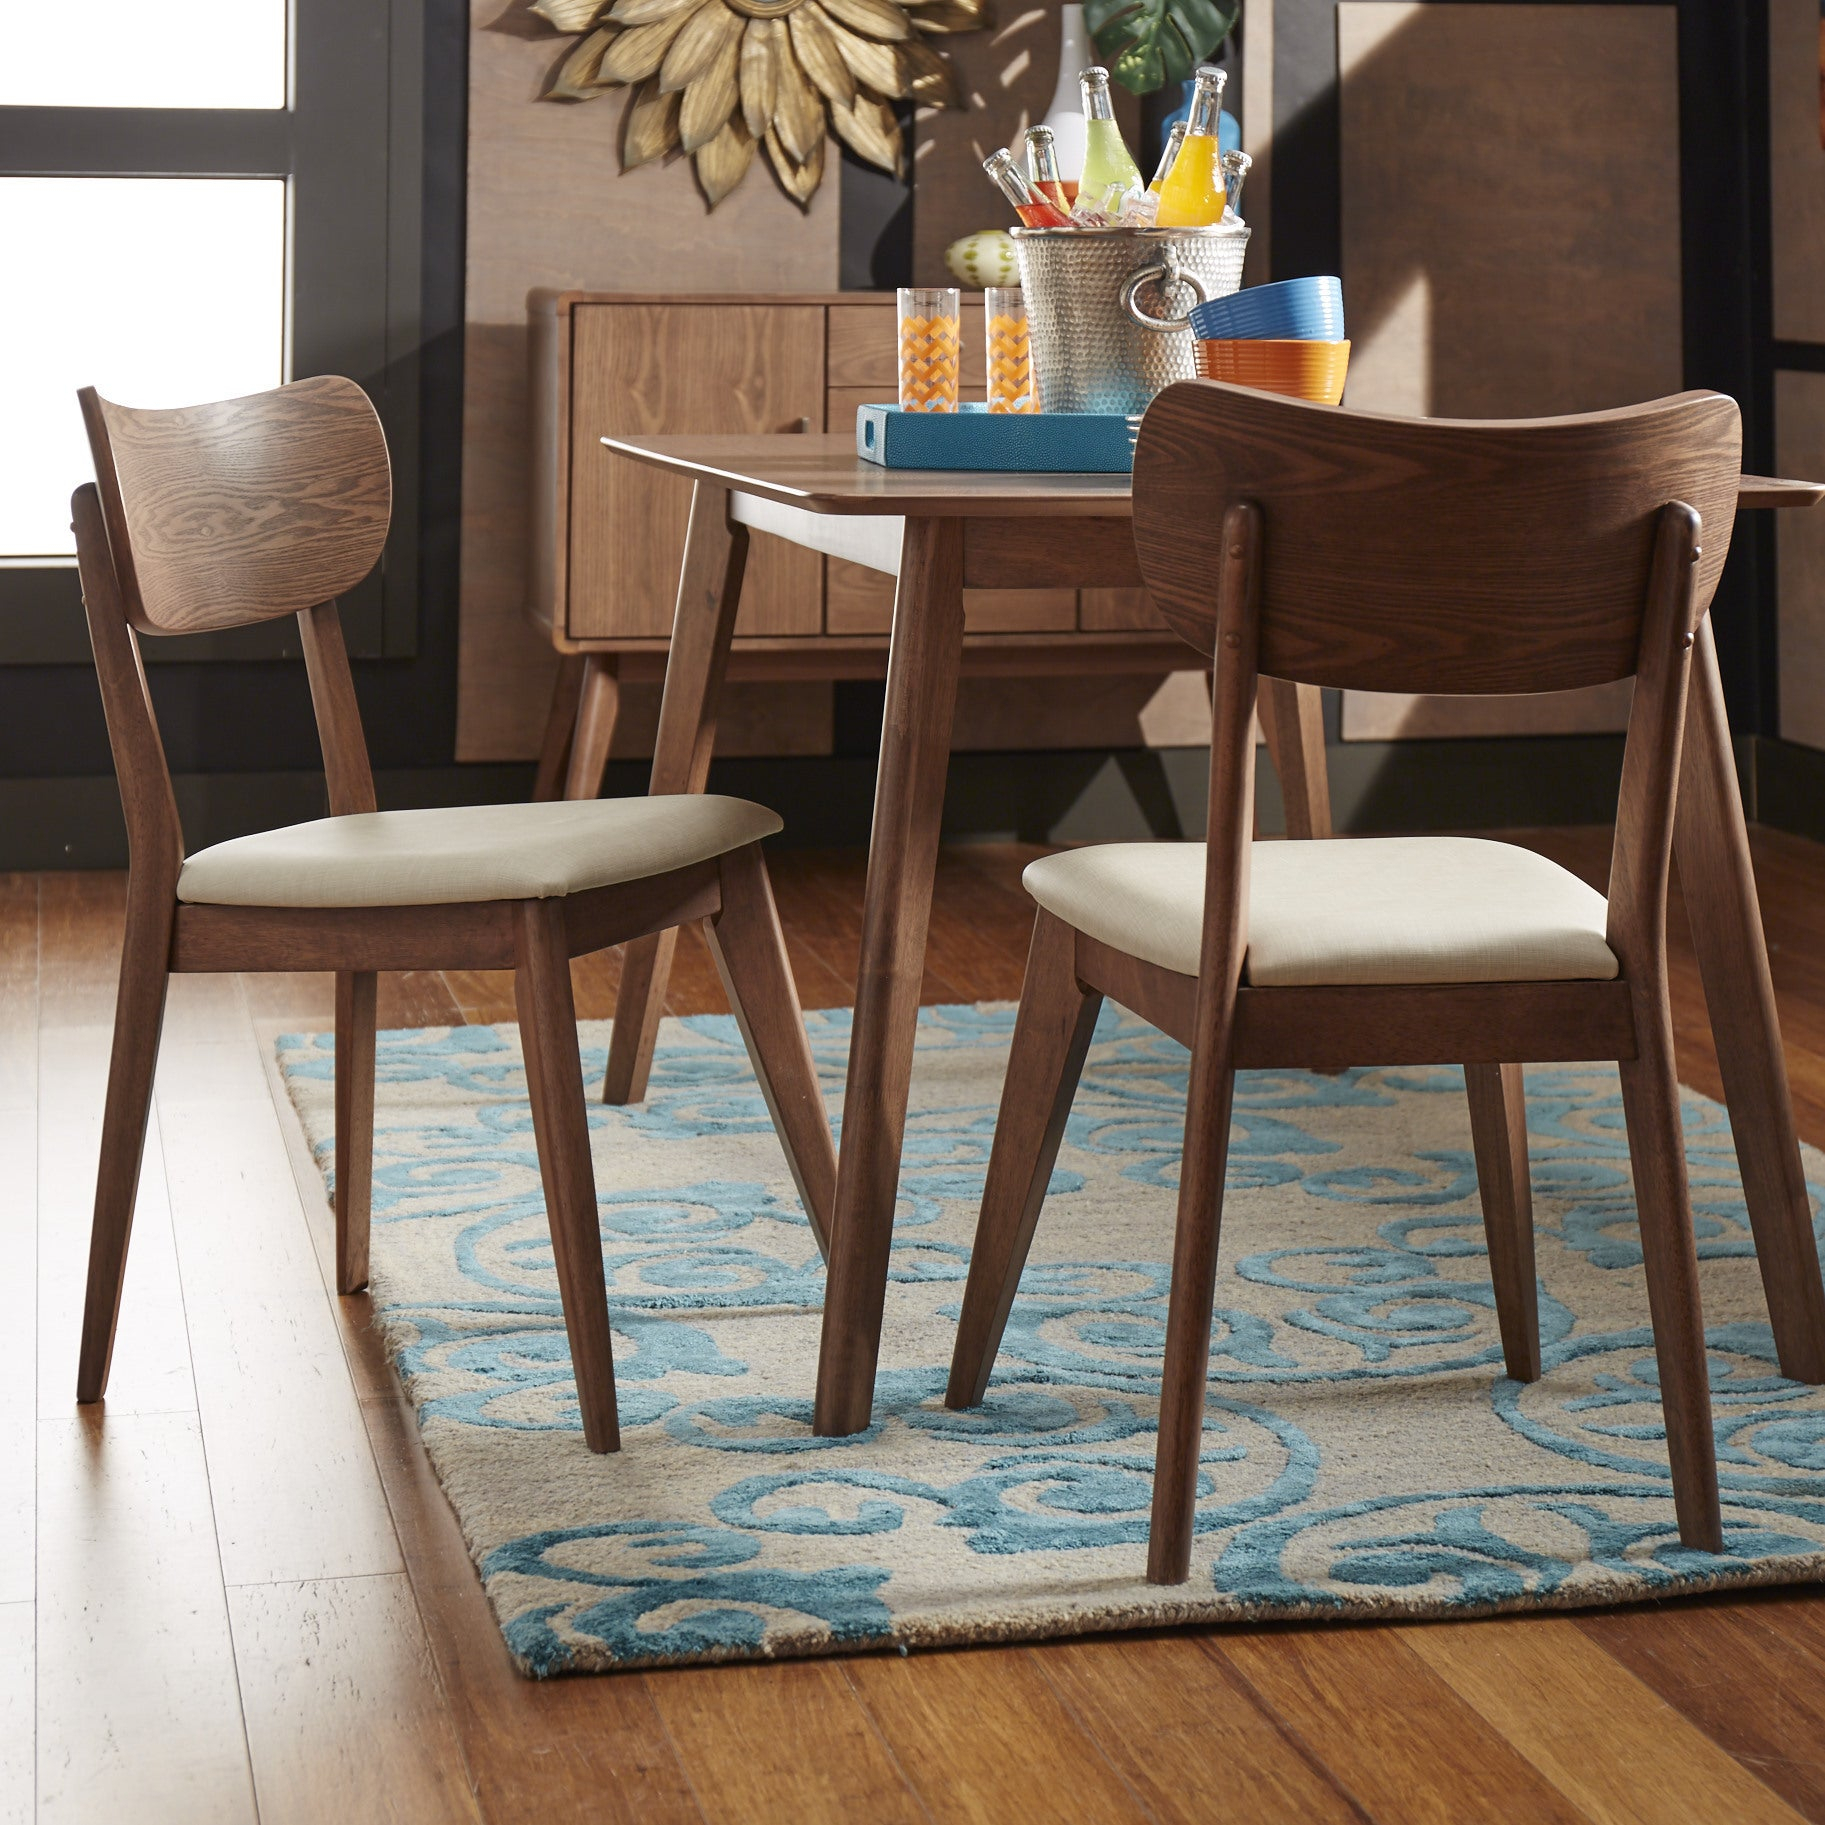 Penelope Danish Modern Walnut Dining Setinspire Q Modern Intended For Current Penelope 3 Piece Counter Height Wood Dining Sets (View 17 of 20)